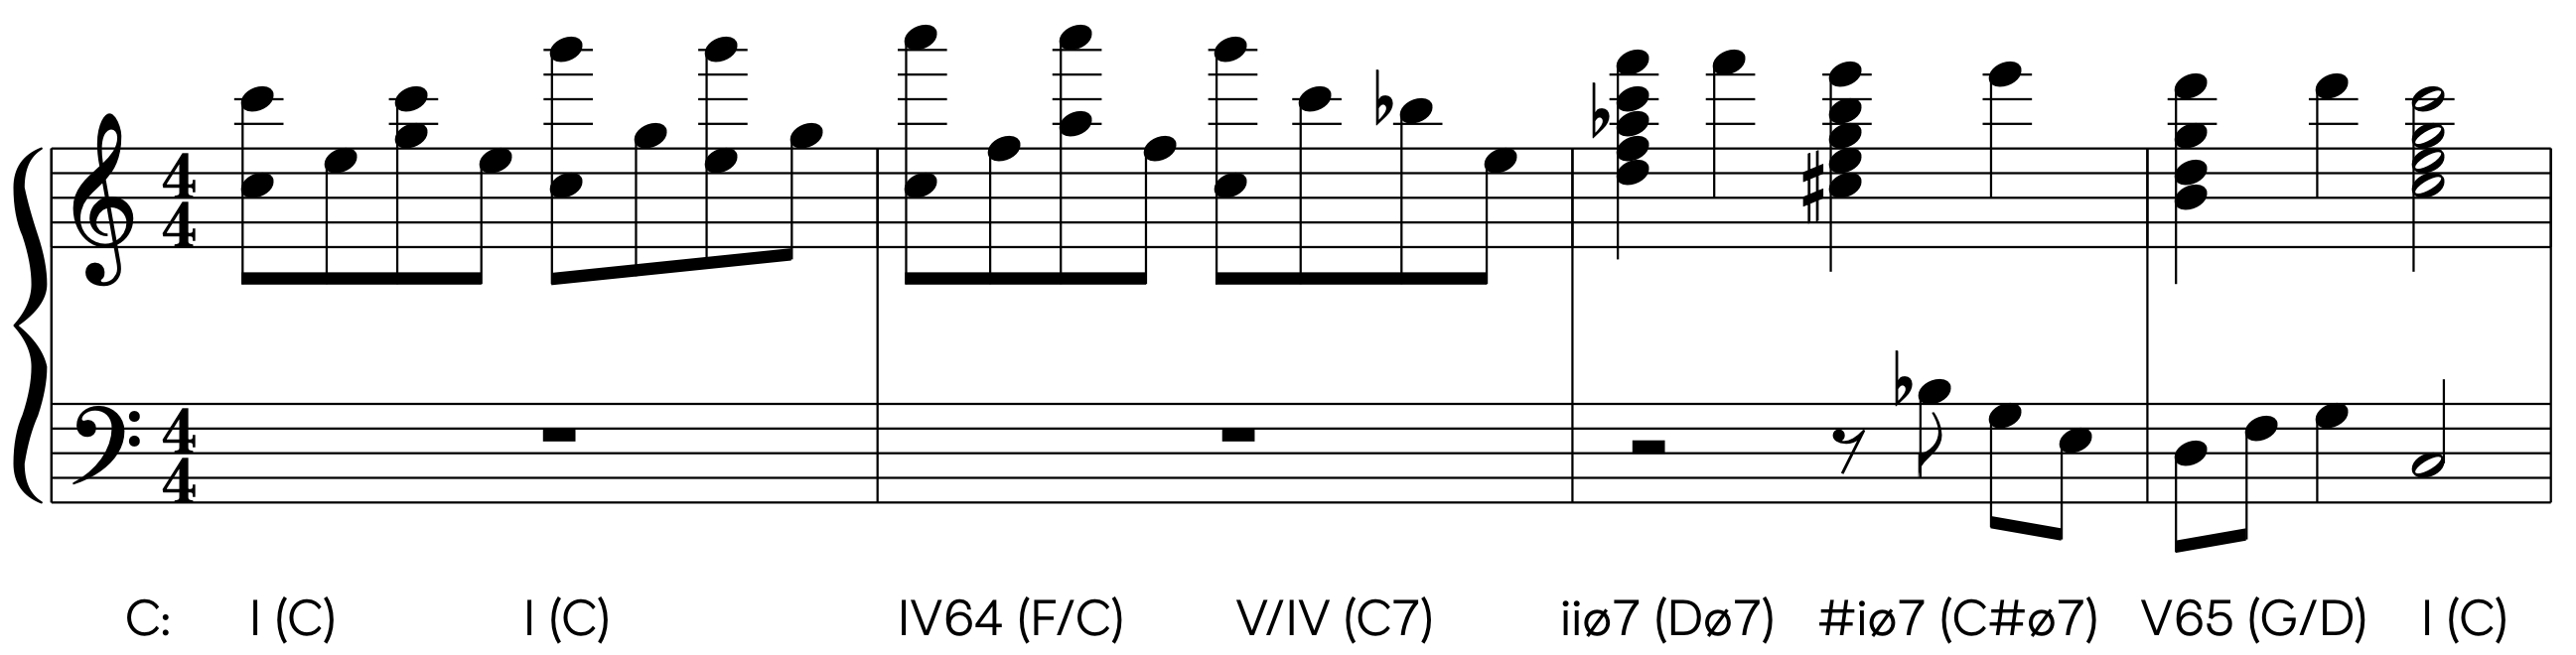 twinkle-twinkle-half-diminished-seventh-harmonization-02